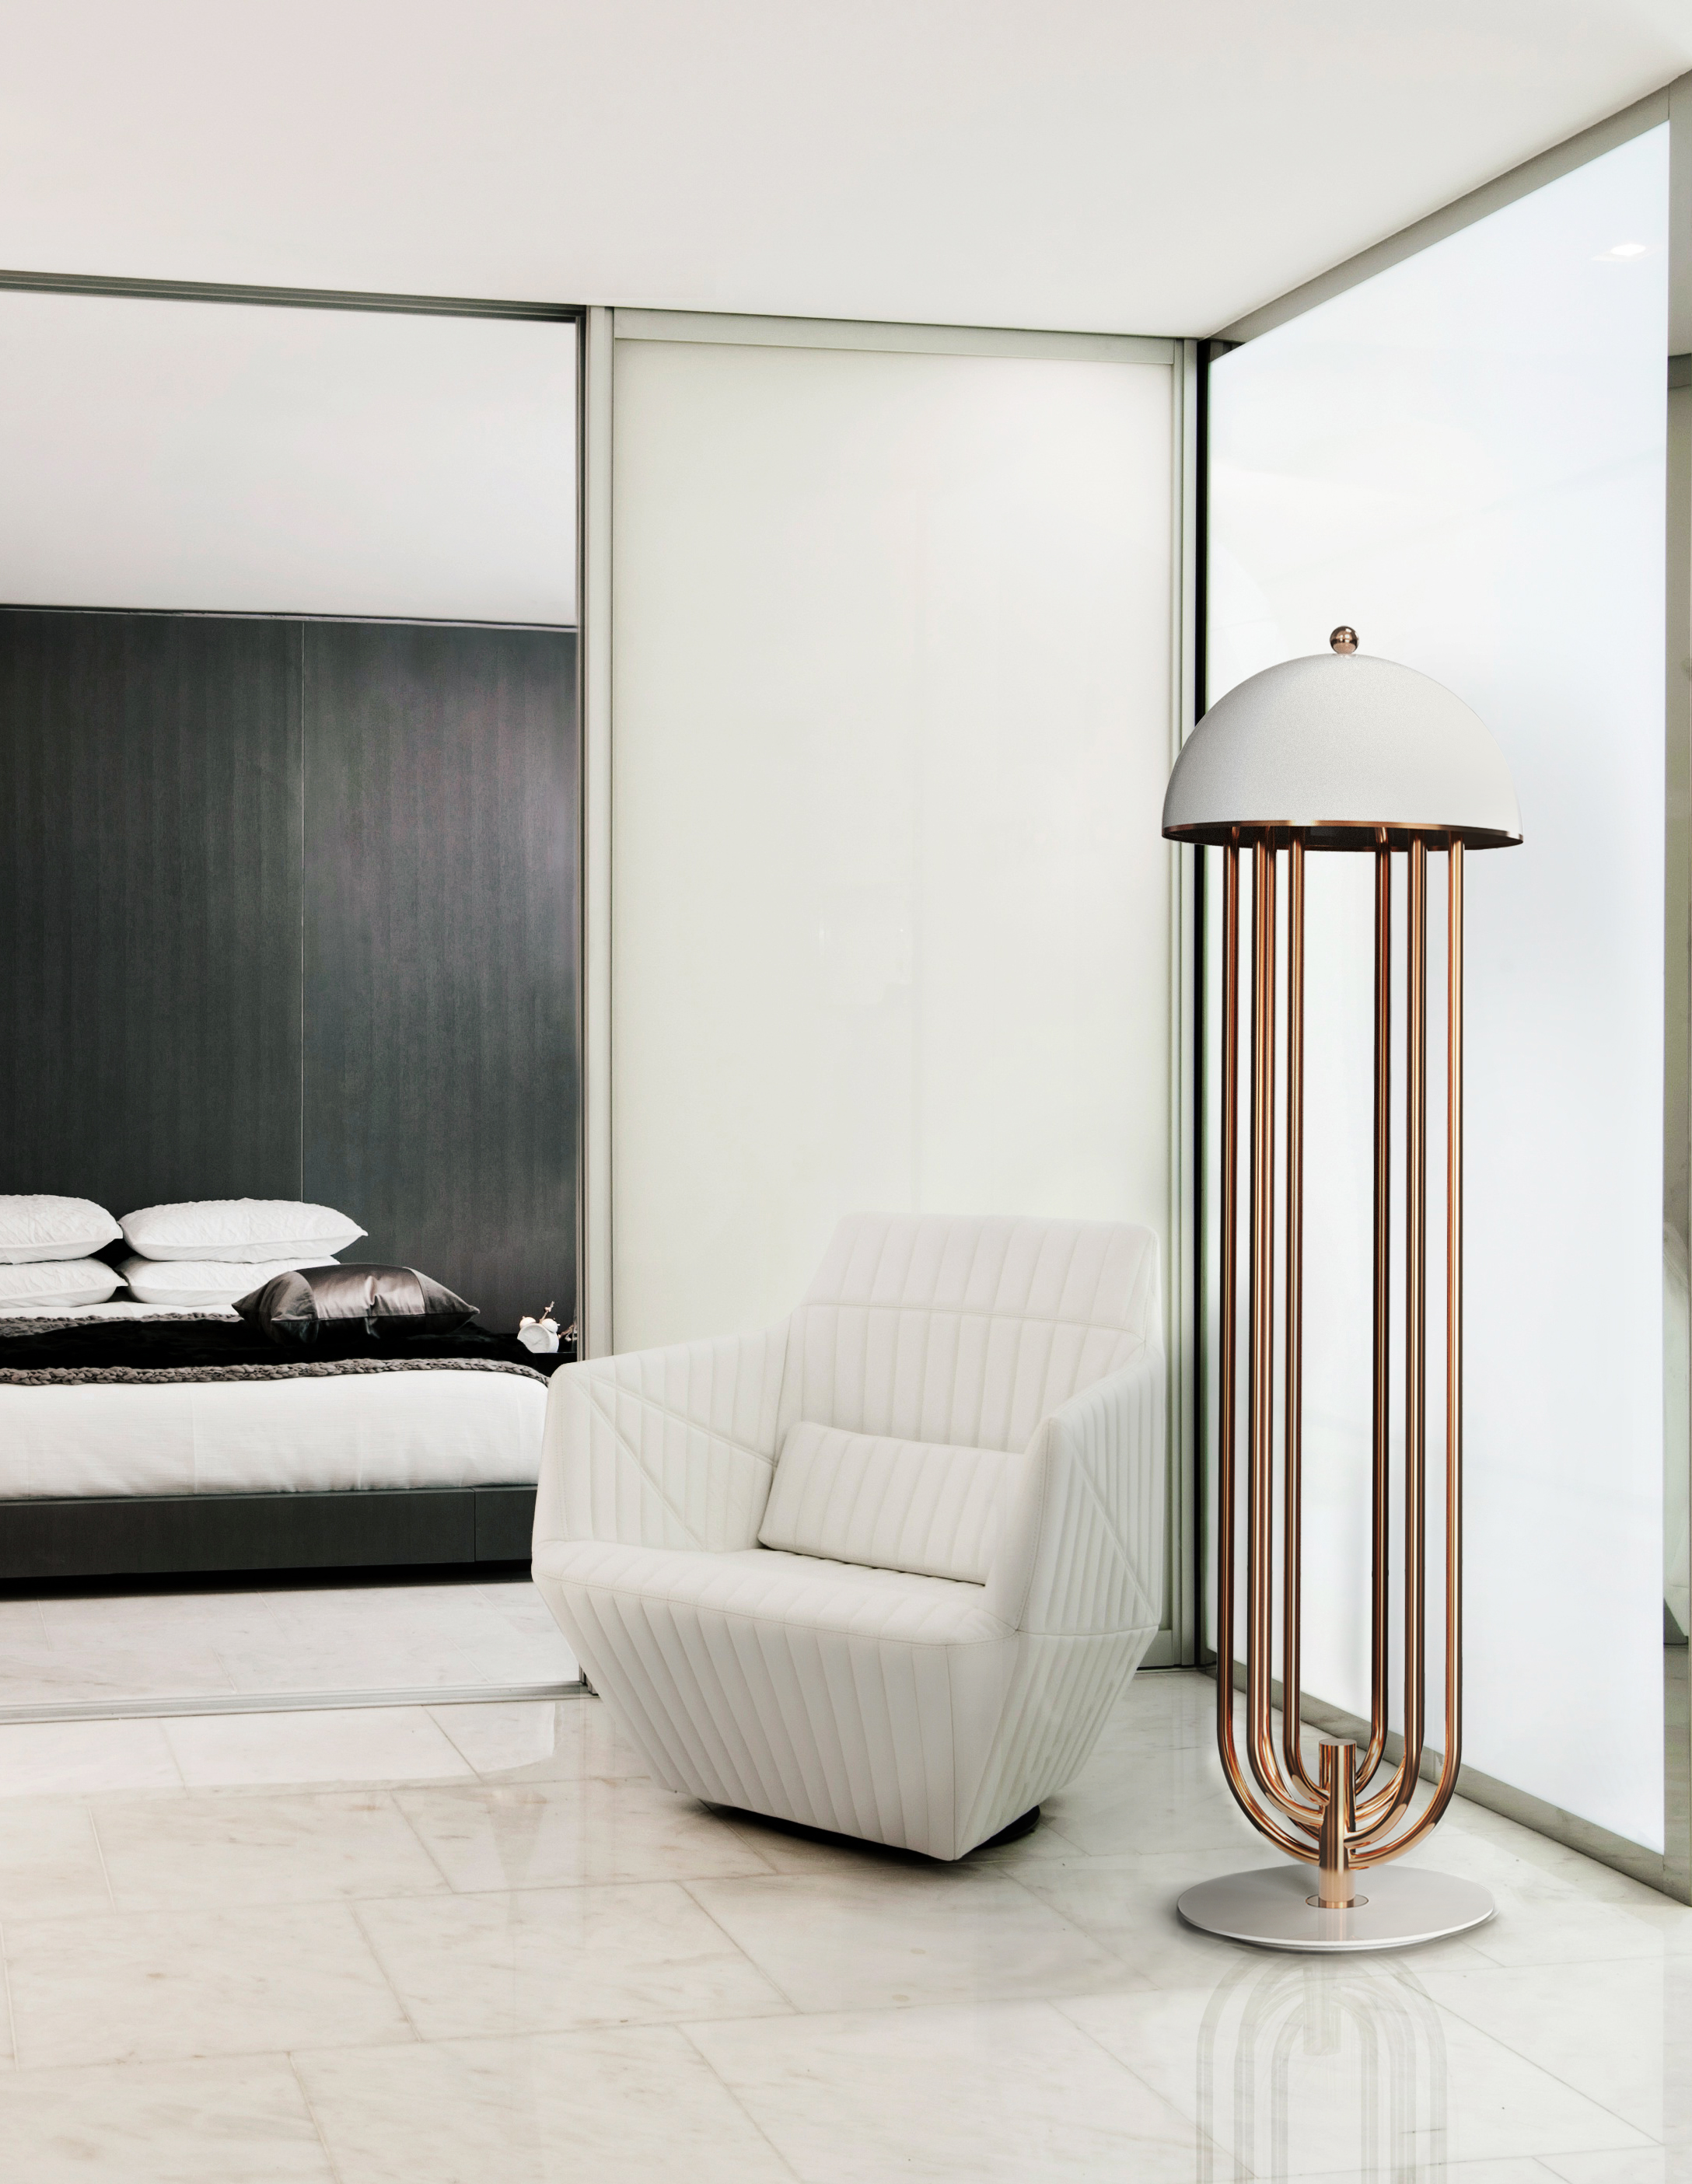 Bright Ideas Make a Style Statement with This Floor Lamp 1 modern floor lamp Bright Ideas: Make a Style Statement with This Modern Floor Lamp Bright Ideas Make a Style Statement with This Modern Floor Lamp 2